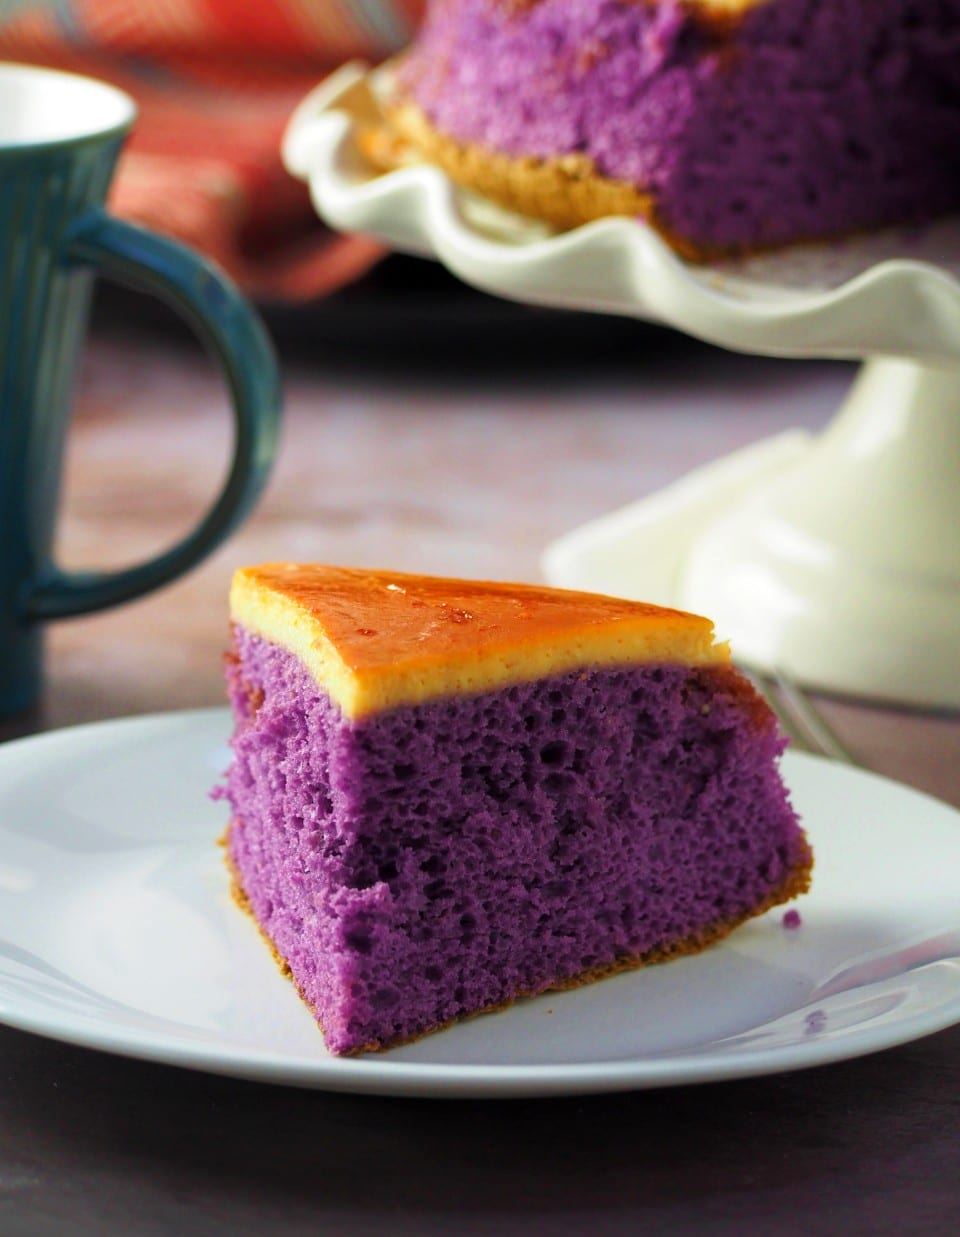 A slice of ube flan cake on a plate.